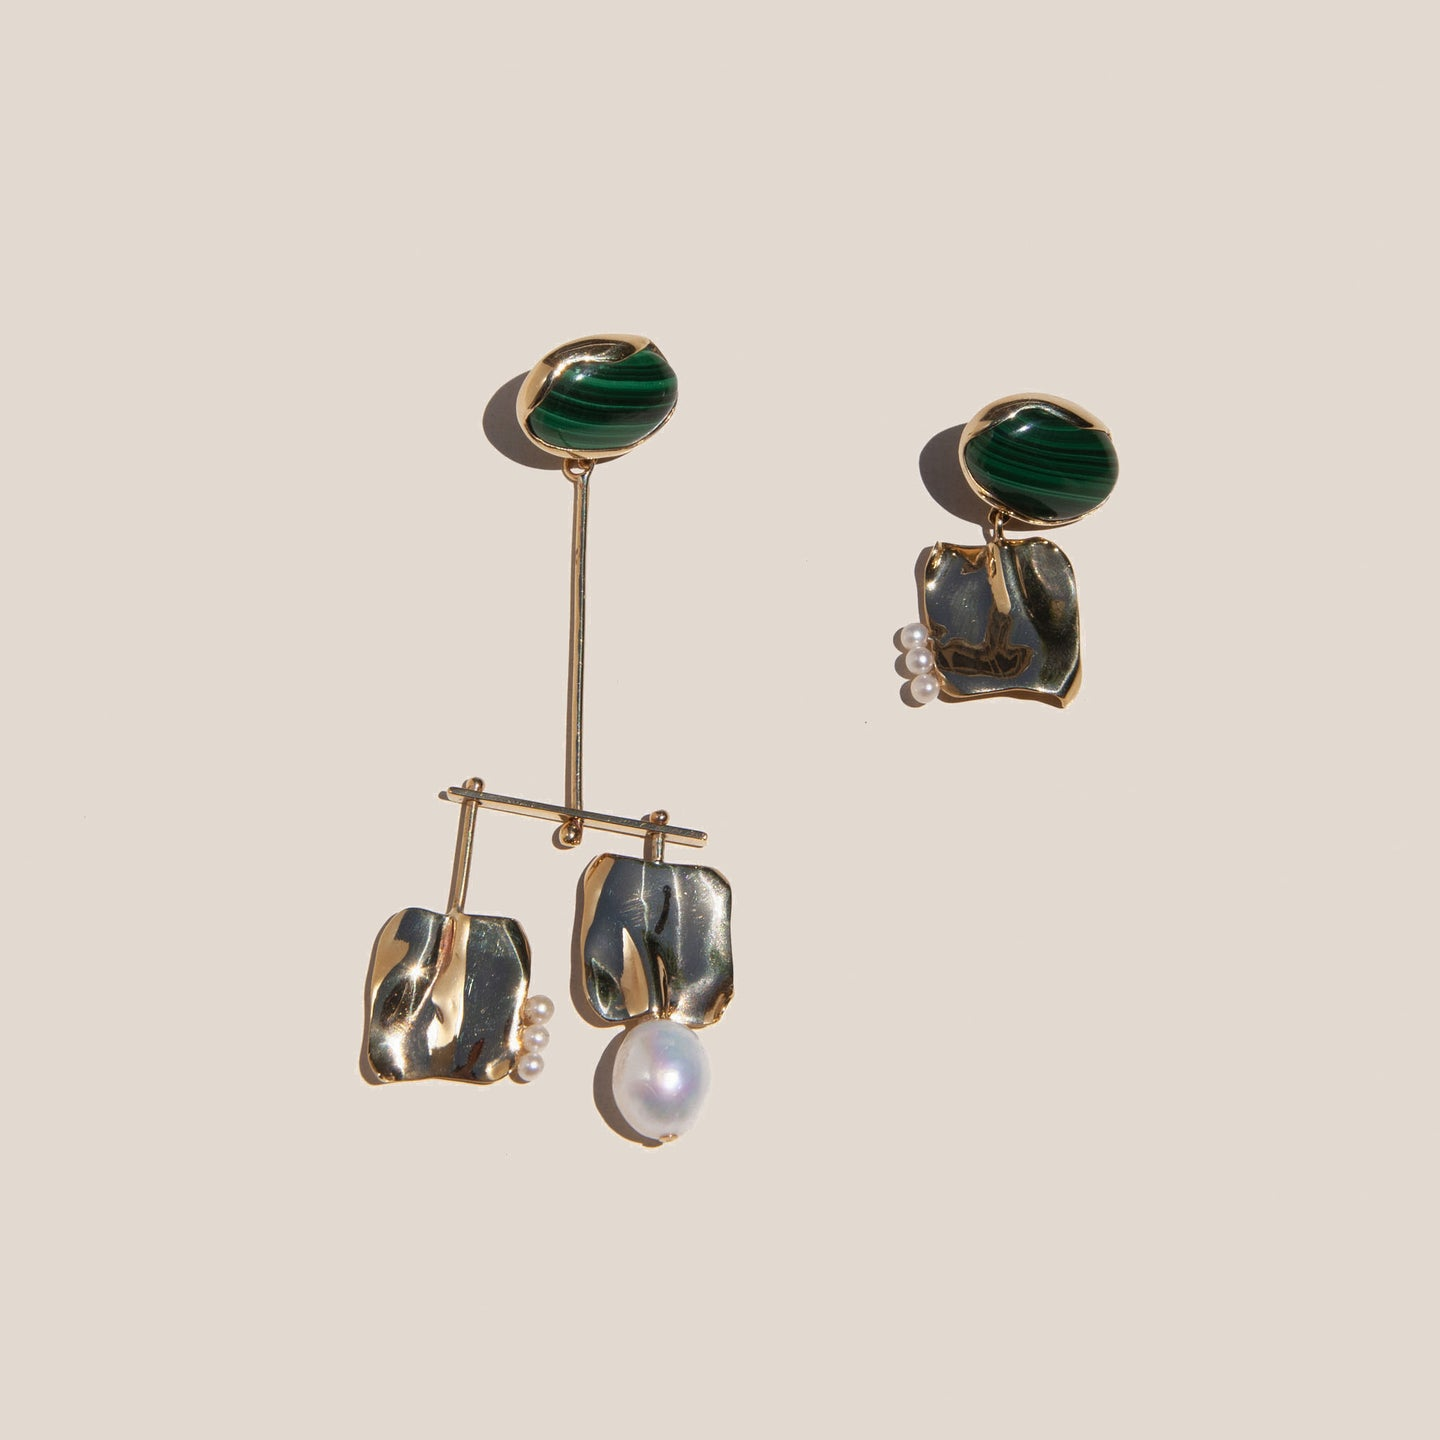 Faris - Badoula Earrings, available at LCD.